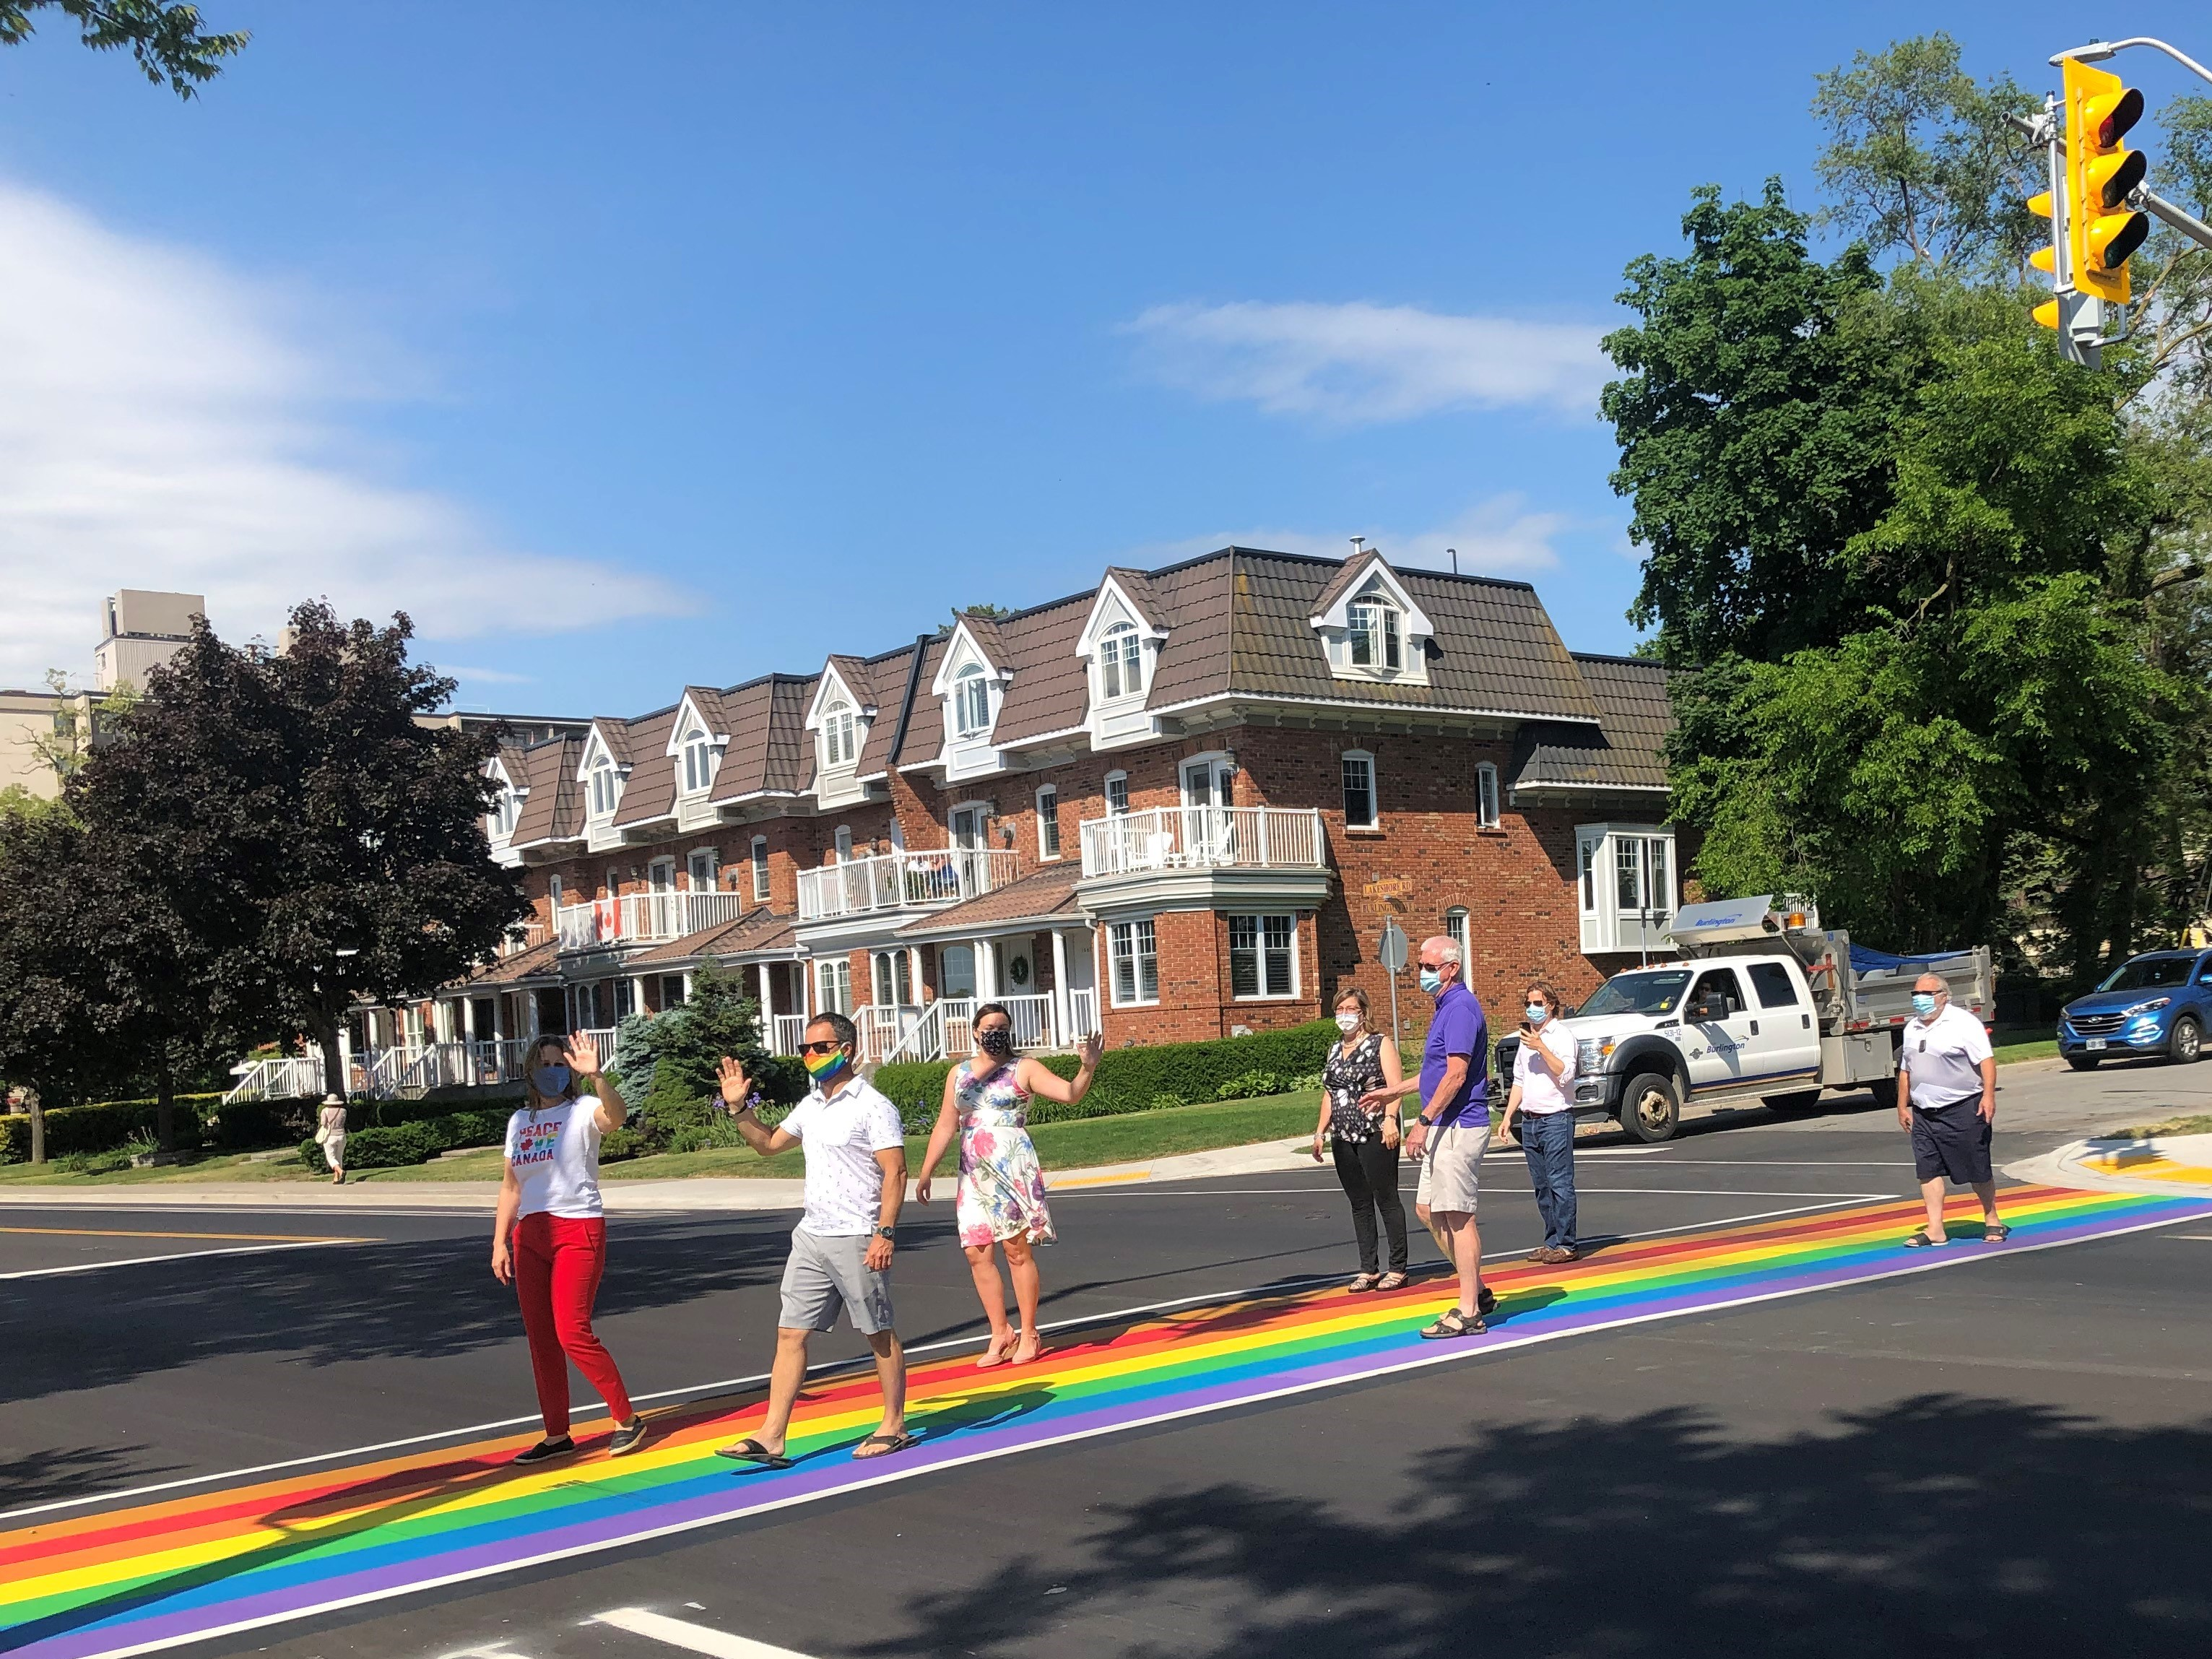 Rainbow crosswalk council